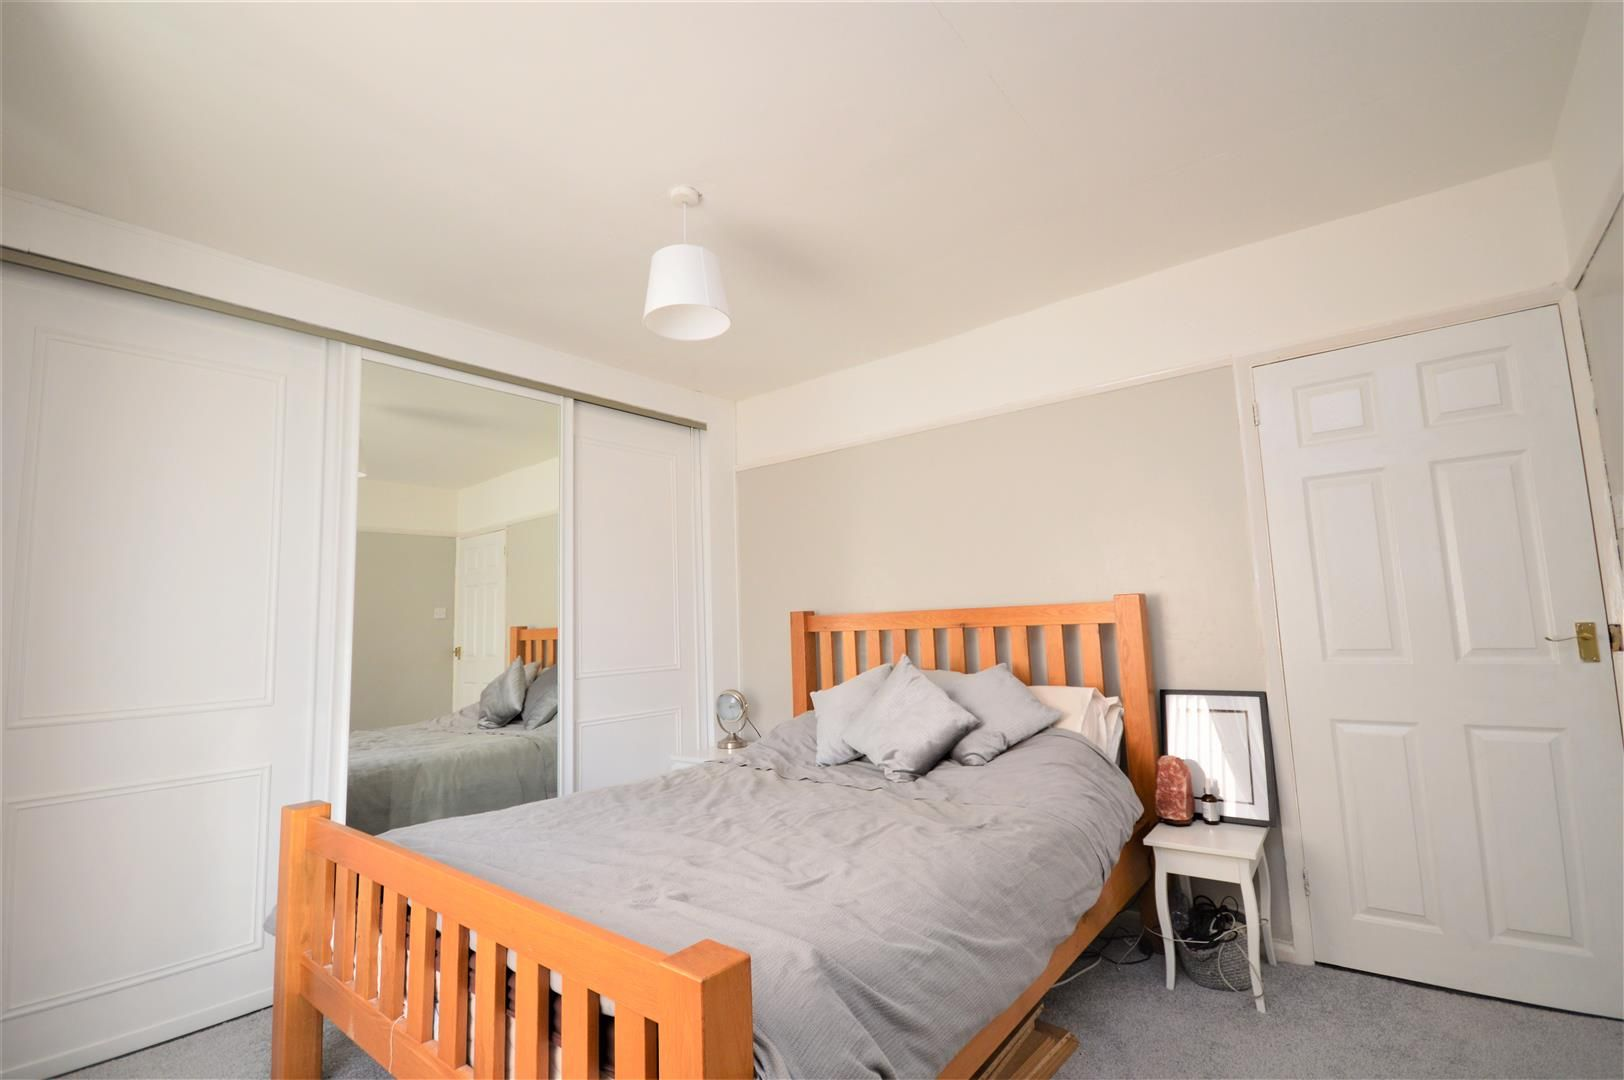 3 bed end-of-terrace for sale in Hereford  - Property Image 10